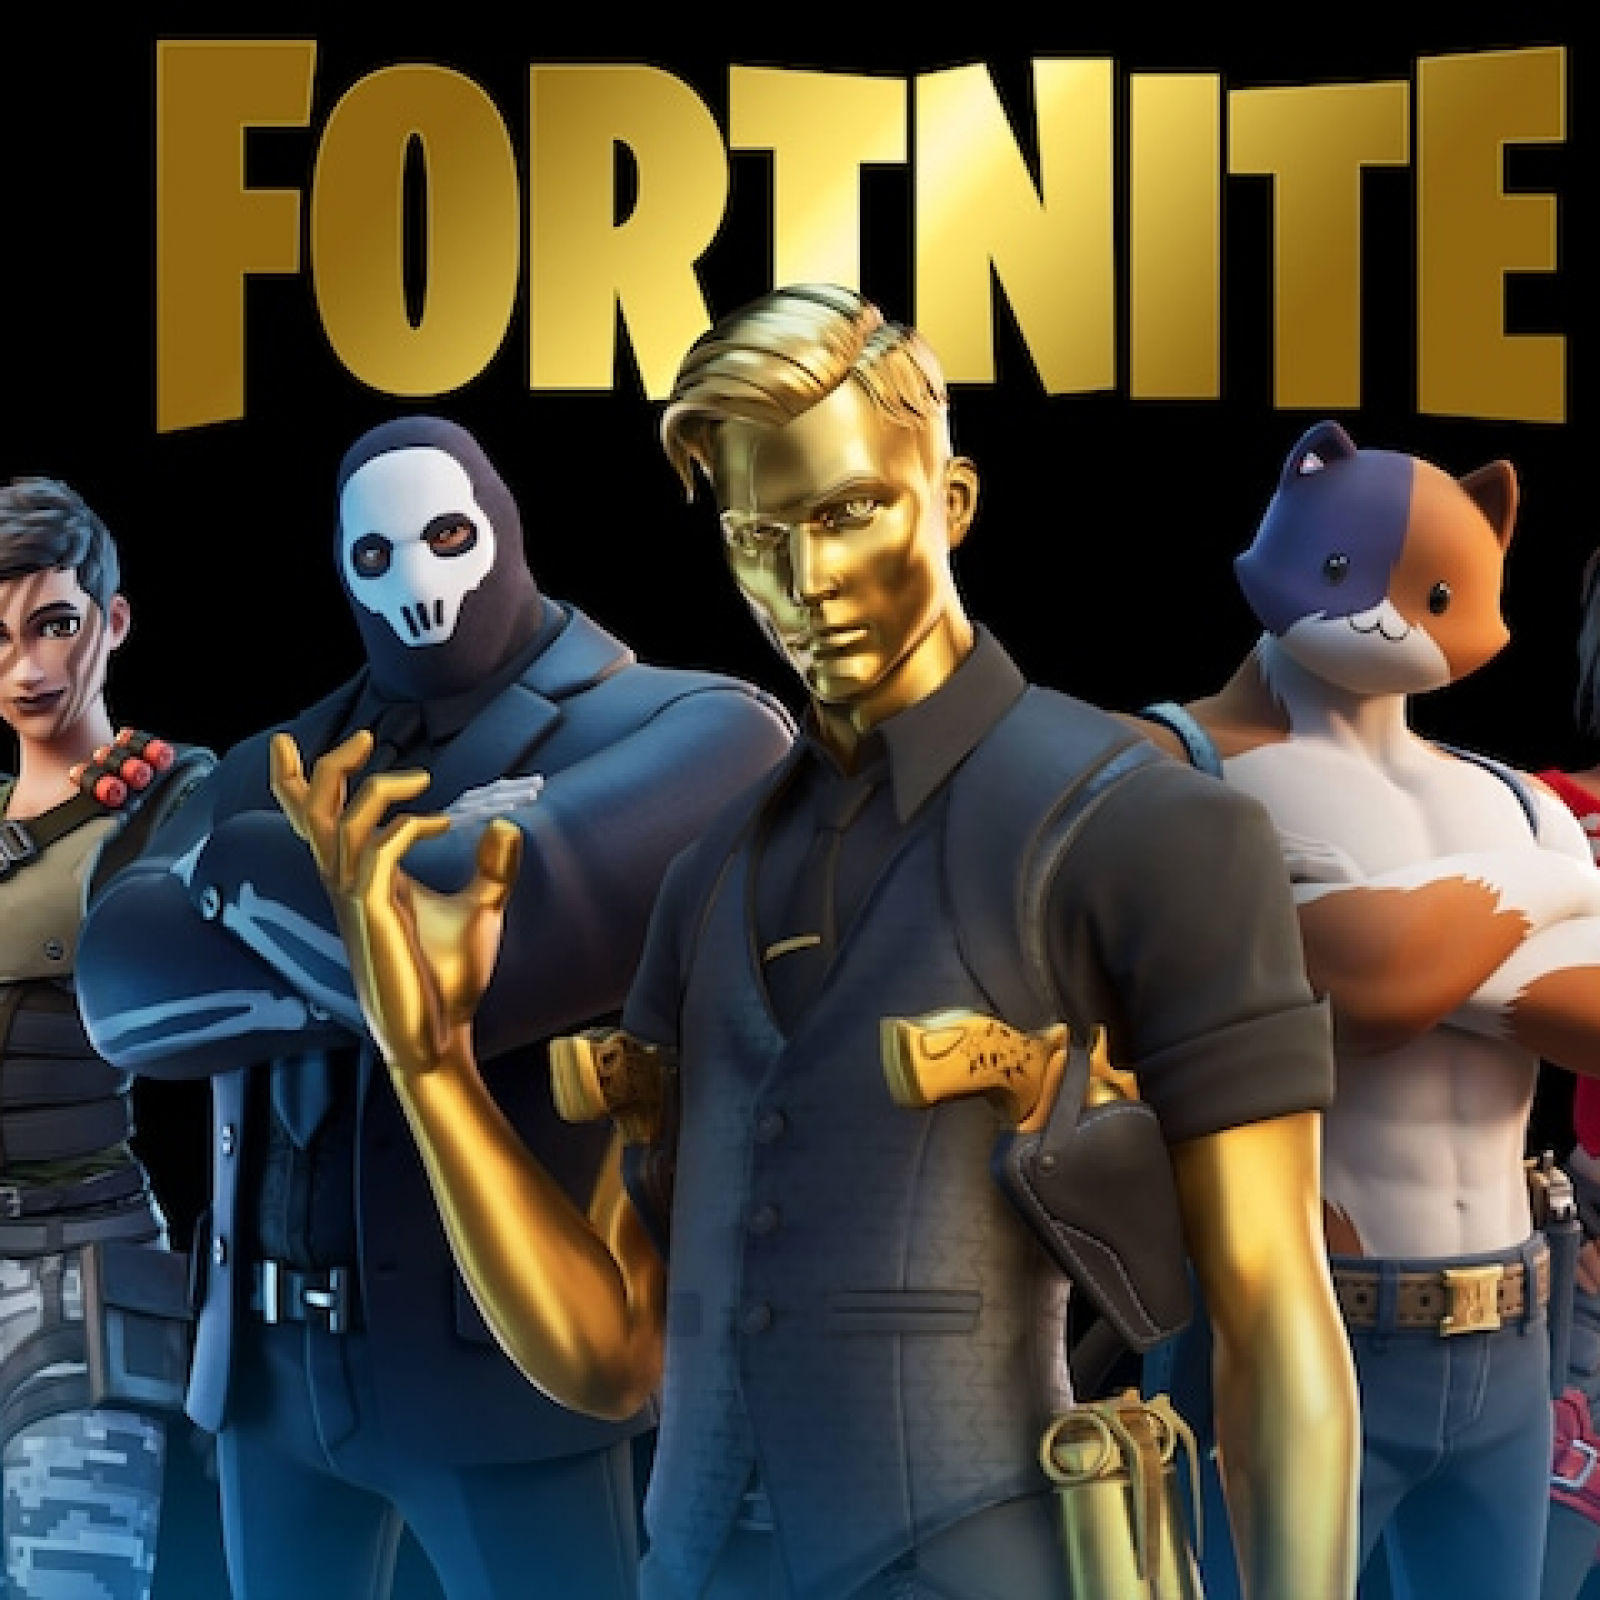 Fortnite Update 12 0 Adds Chapter 2 Season 2 Map Battle Pass Patch Notes